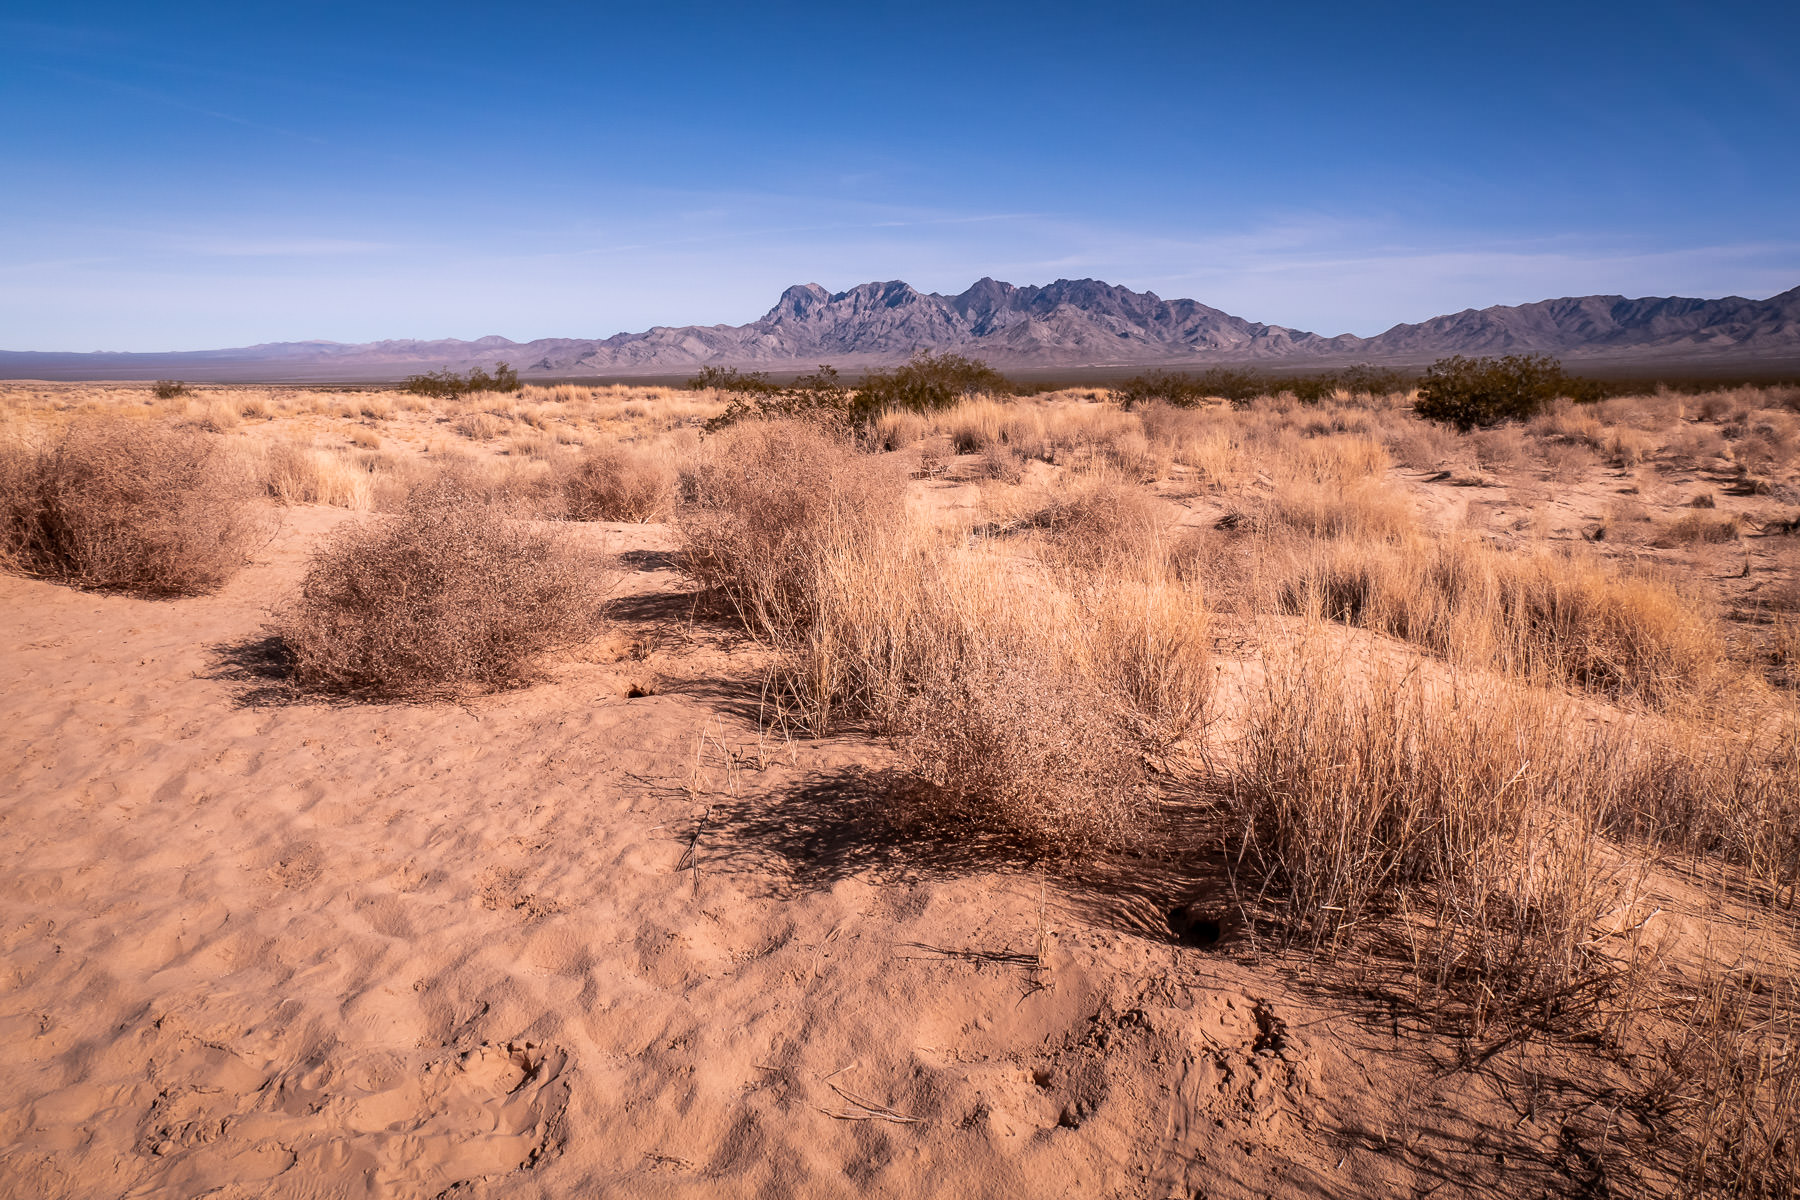 The arid landscape of California's Mojave National Preserve.